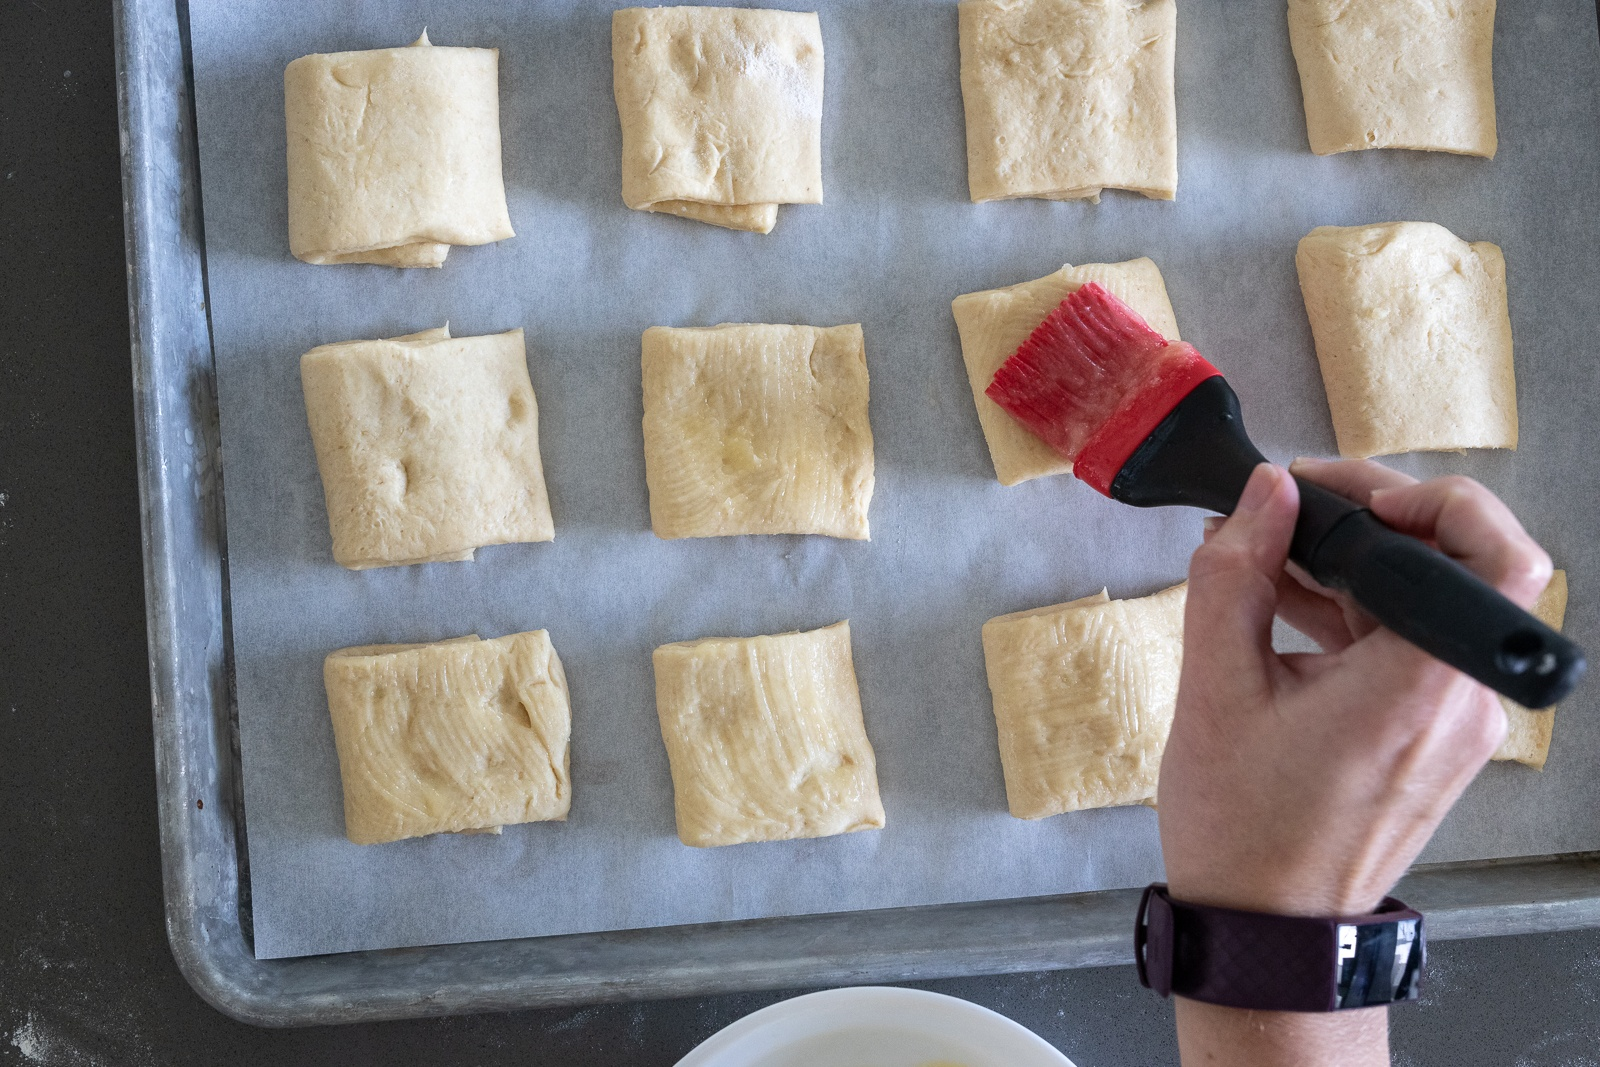 Woman brushing the top of rolls with melted butter.